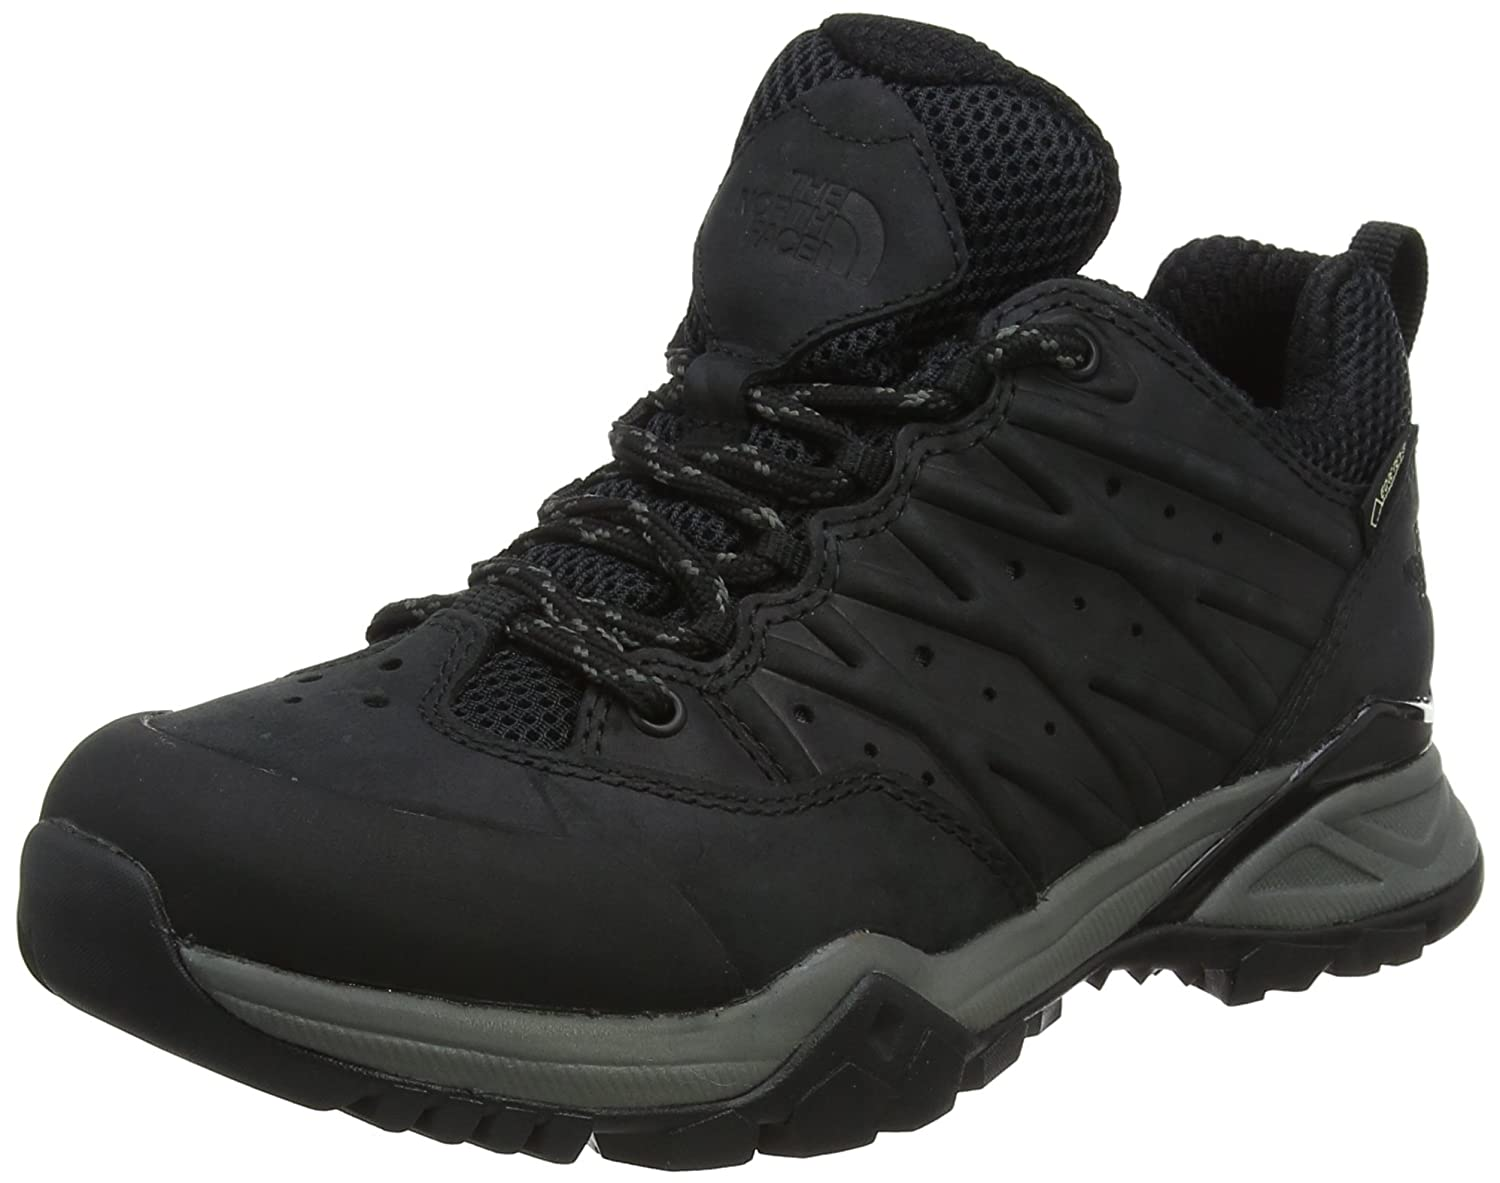 The North Face Damen W HH Hike Ii GTX Trekking-& Wanderhalbschuhe Schwarz (Tnf Black/Tnf Black Kx7)